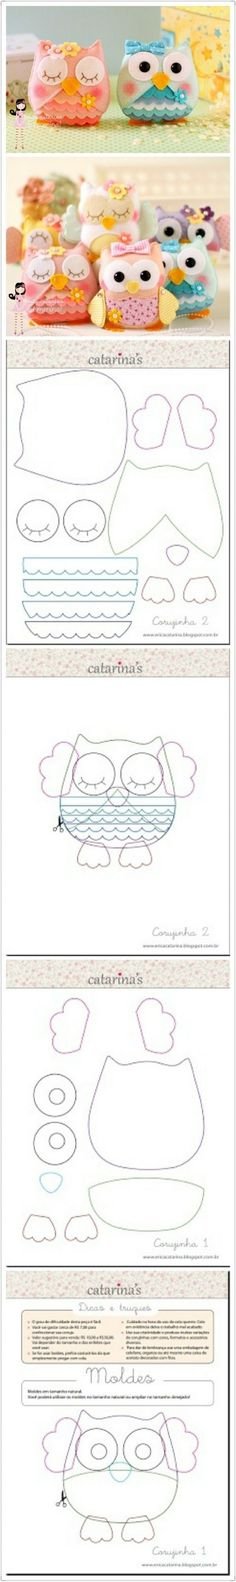 Felt owls, Owl patterns i inne popularne na Pinter. Sewing Toys, Sewing Crafts, Sewing Projects, Felt Projects, Owl Crafts, Cute Crafts, Felt Crafts Diy, Owl Patterns, Sewing Patterns